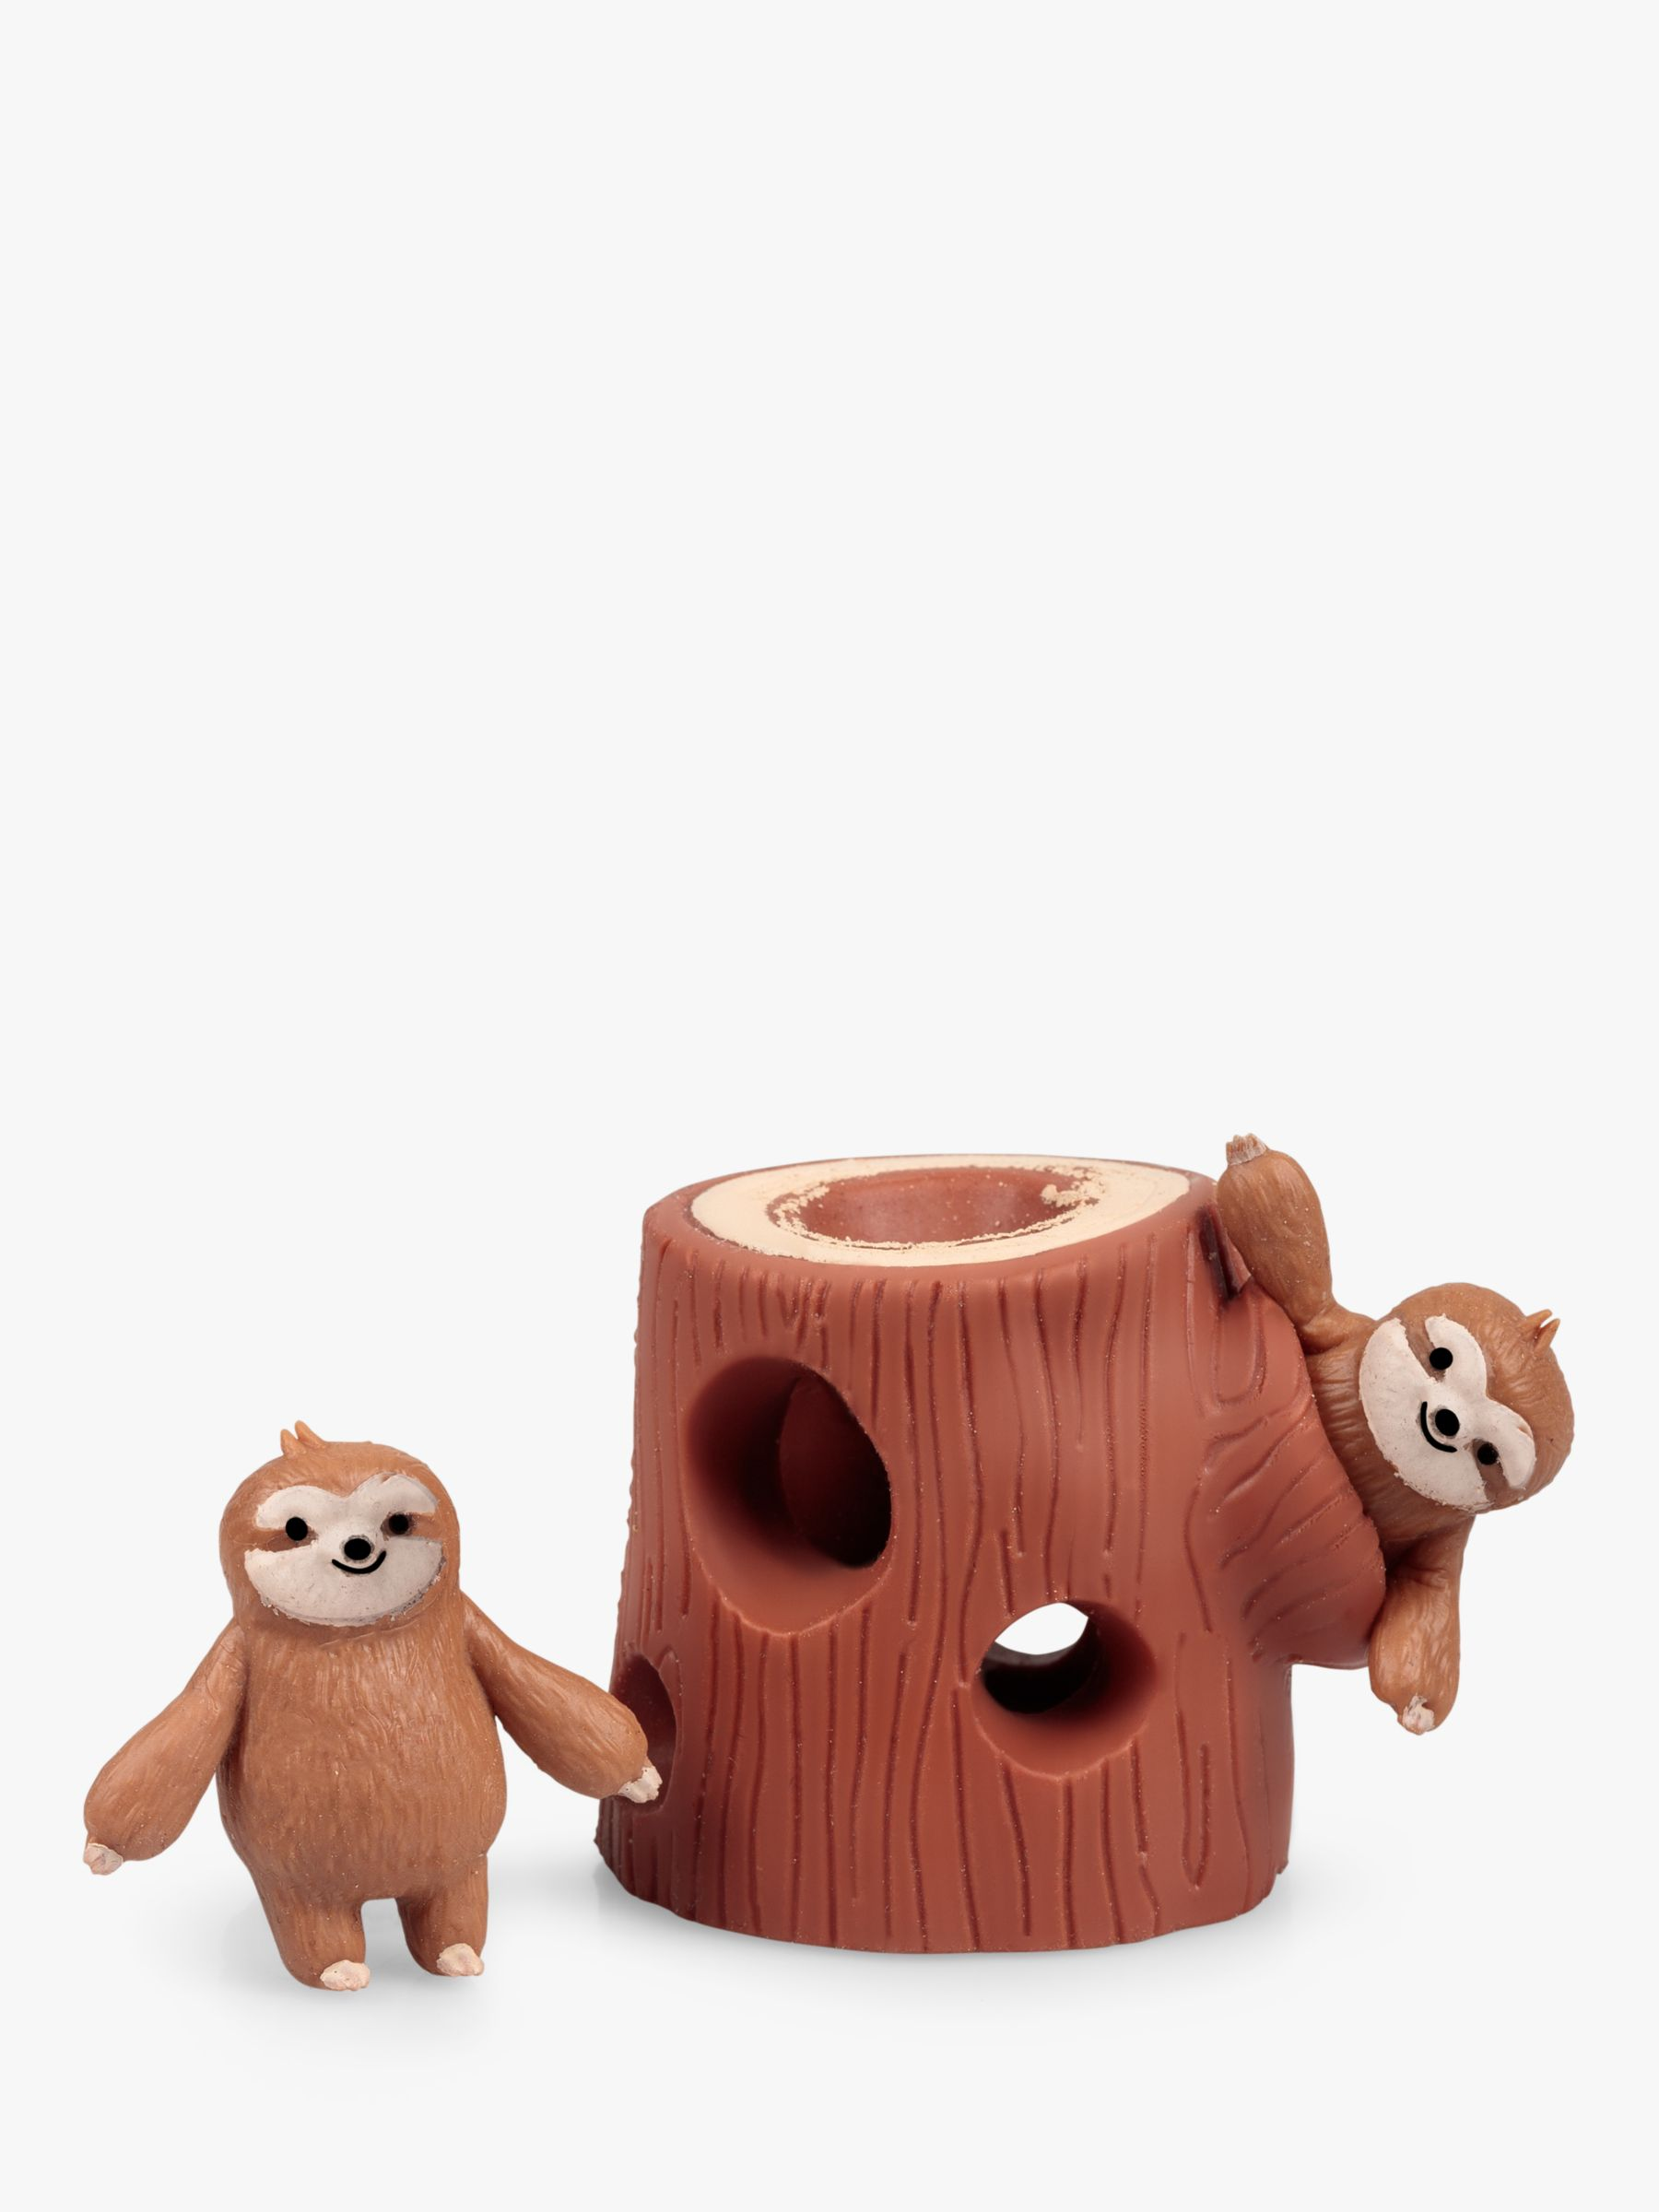 Tobar Stretchy Sloth And Stump